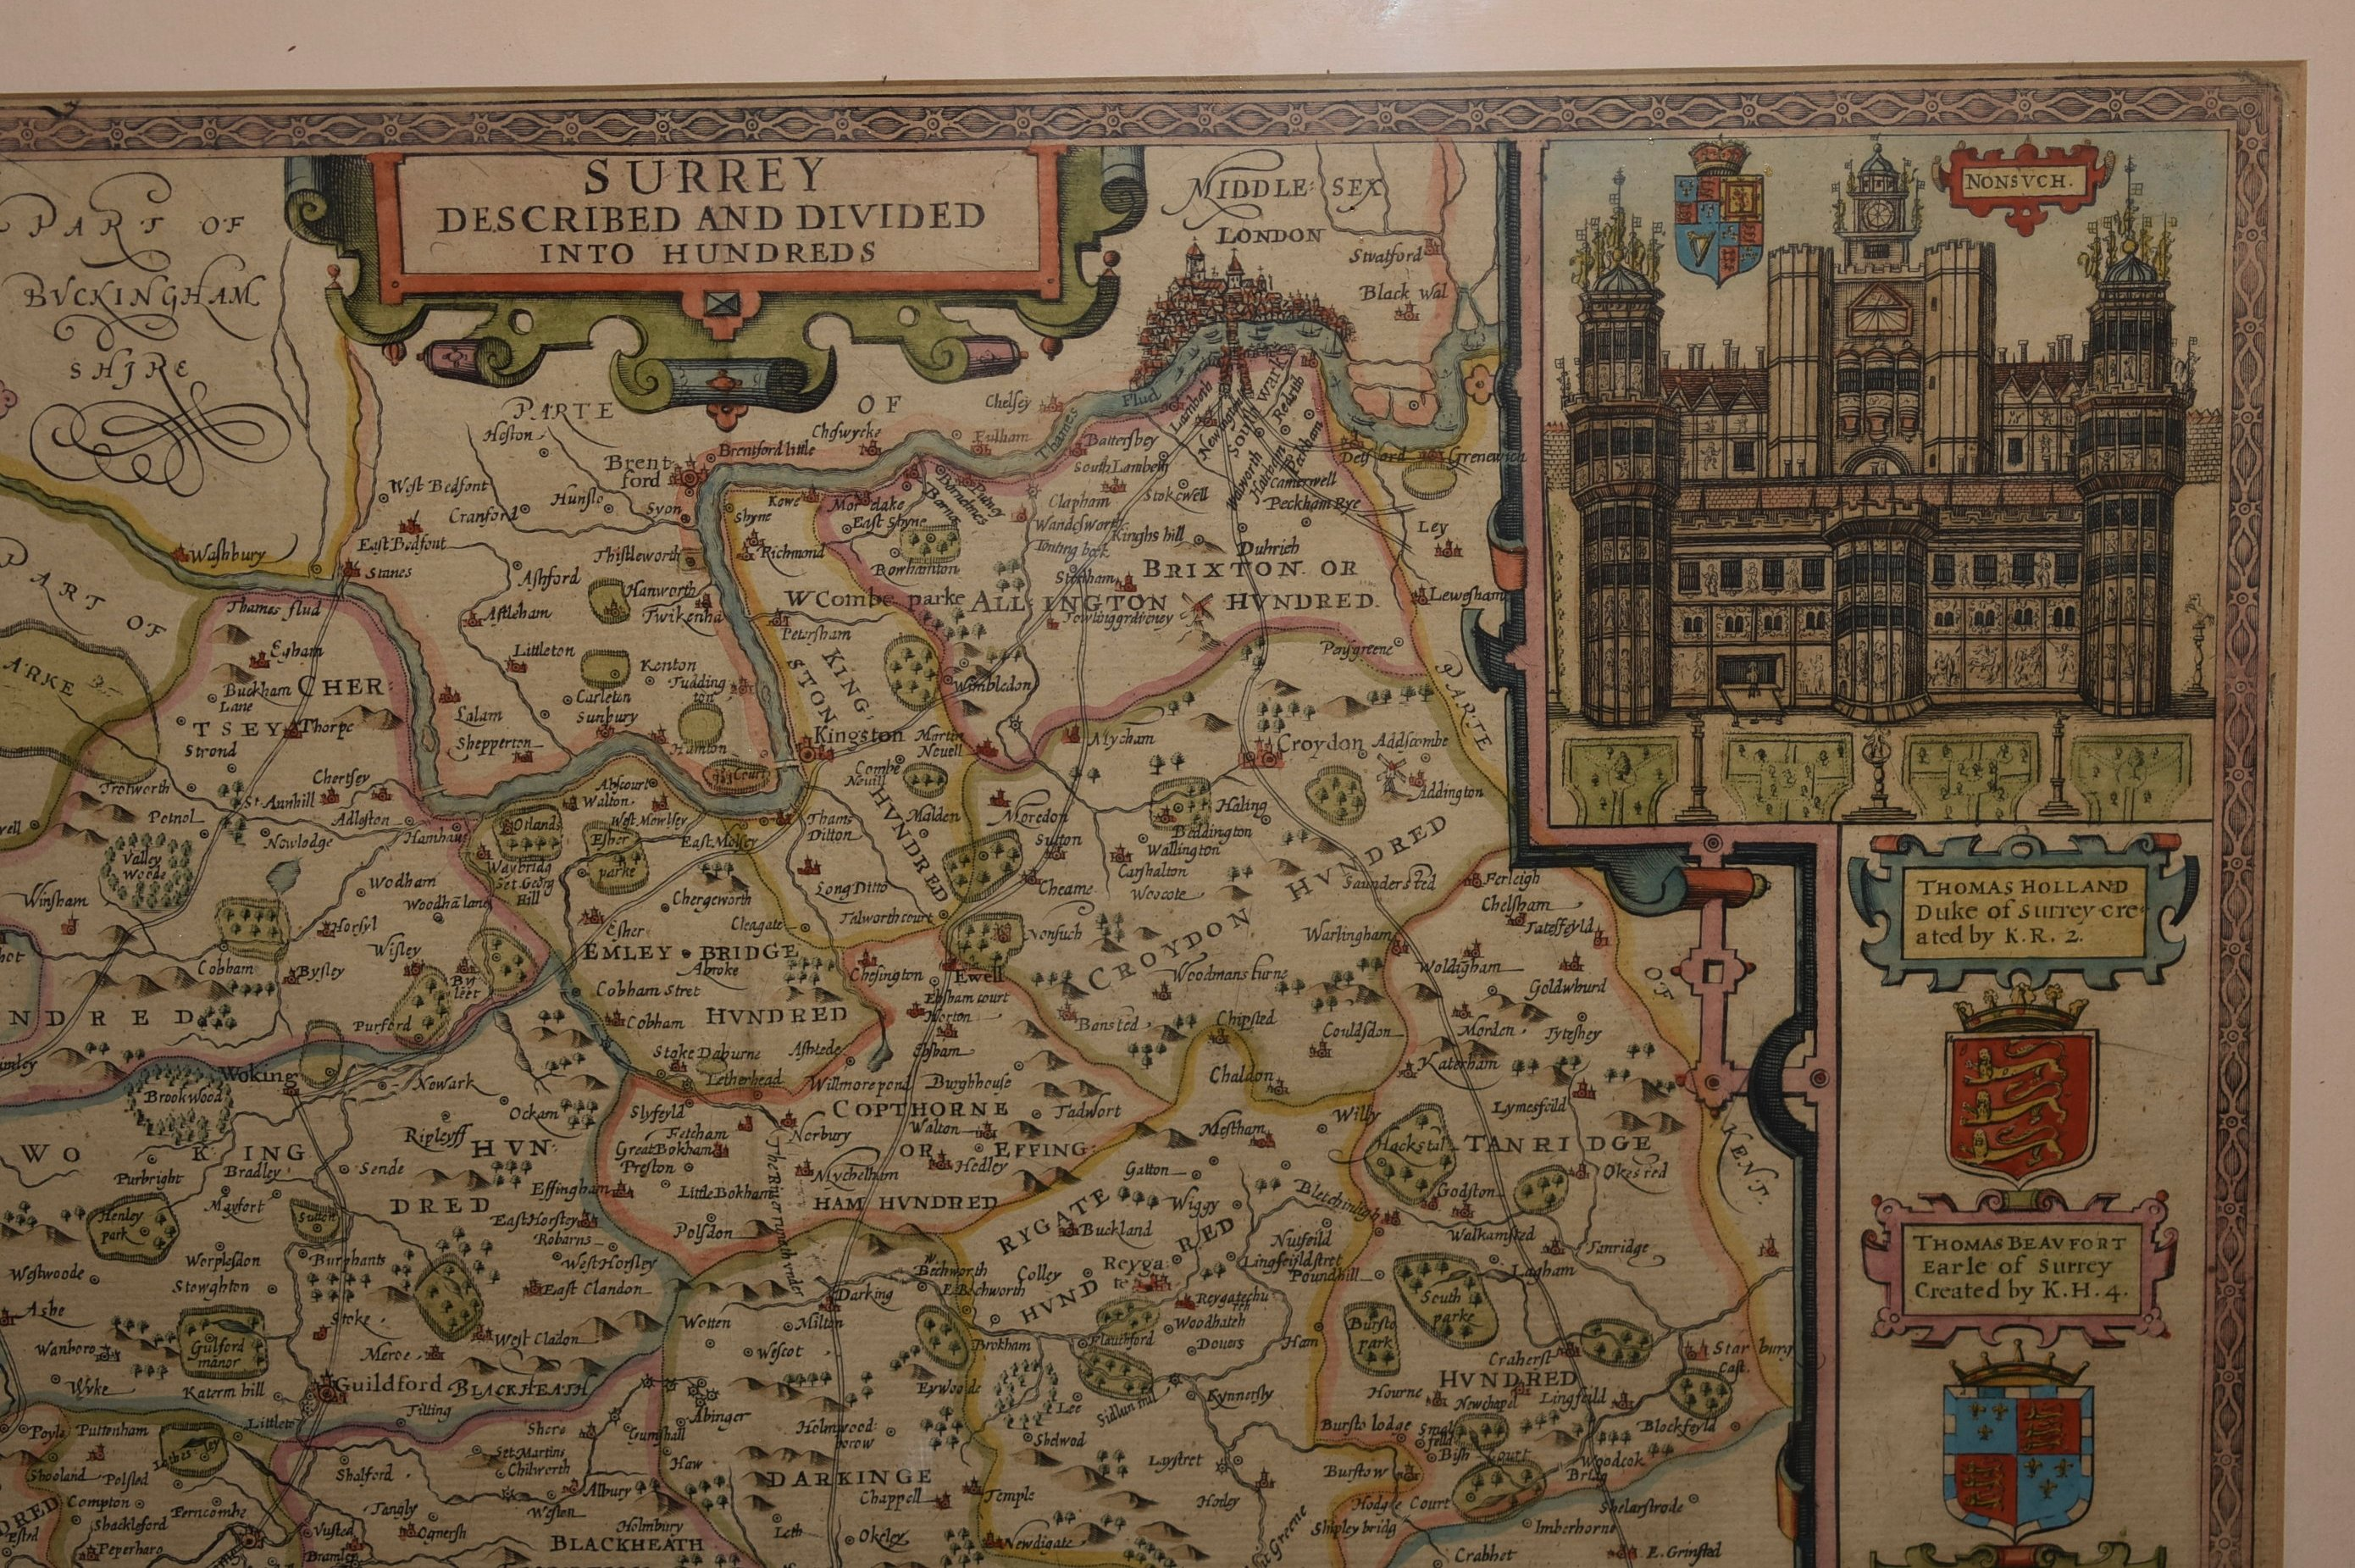 Image for Original engraved antique map of Surrey. 'SURREY DESCRIBED AND DIVIDED INTO HUNDREDS'